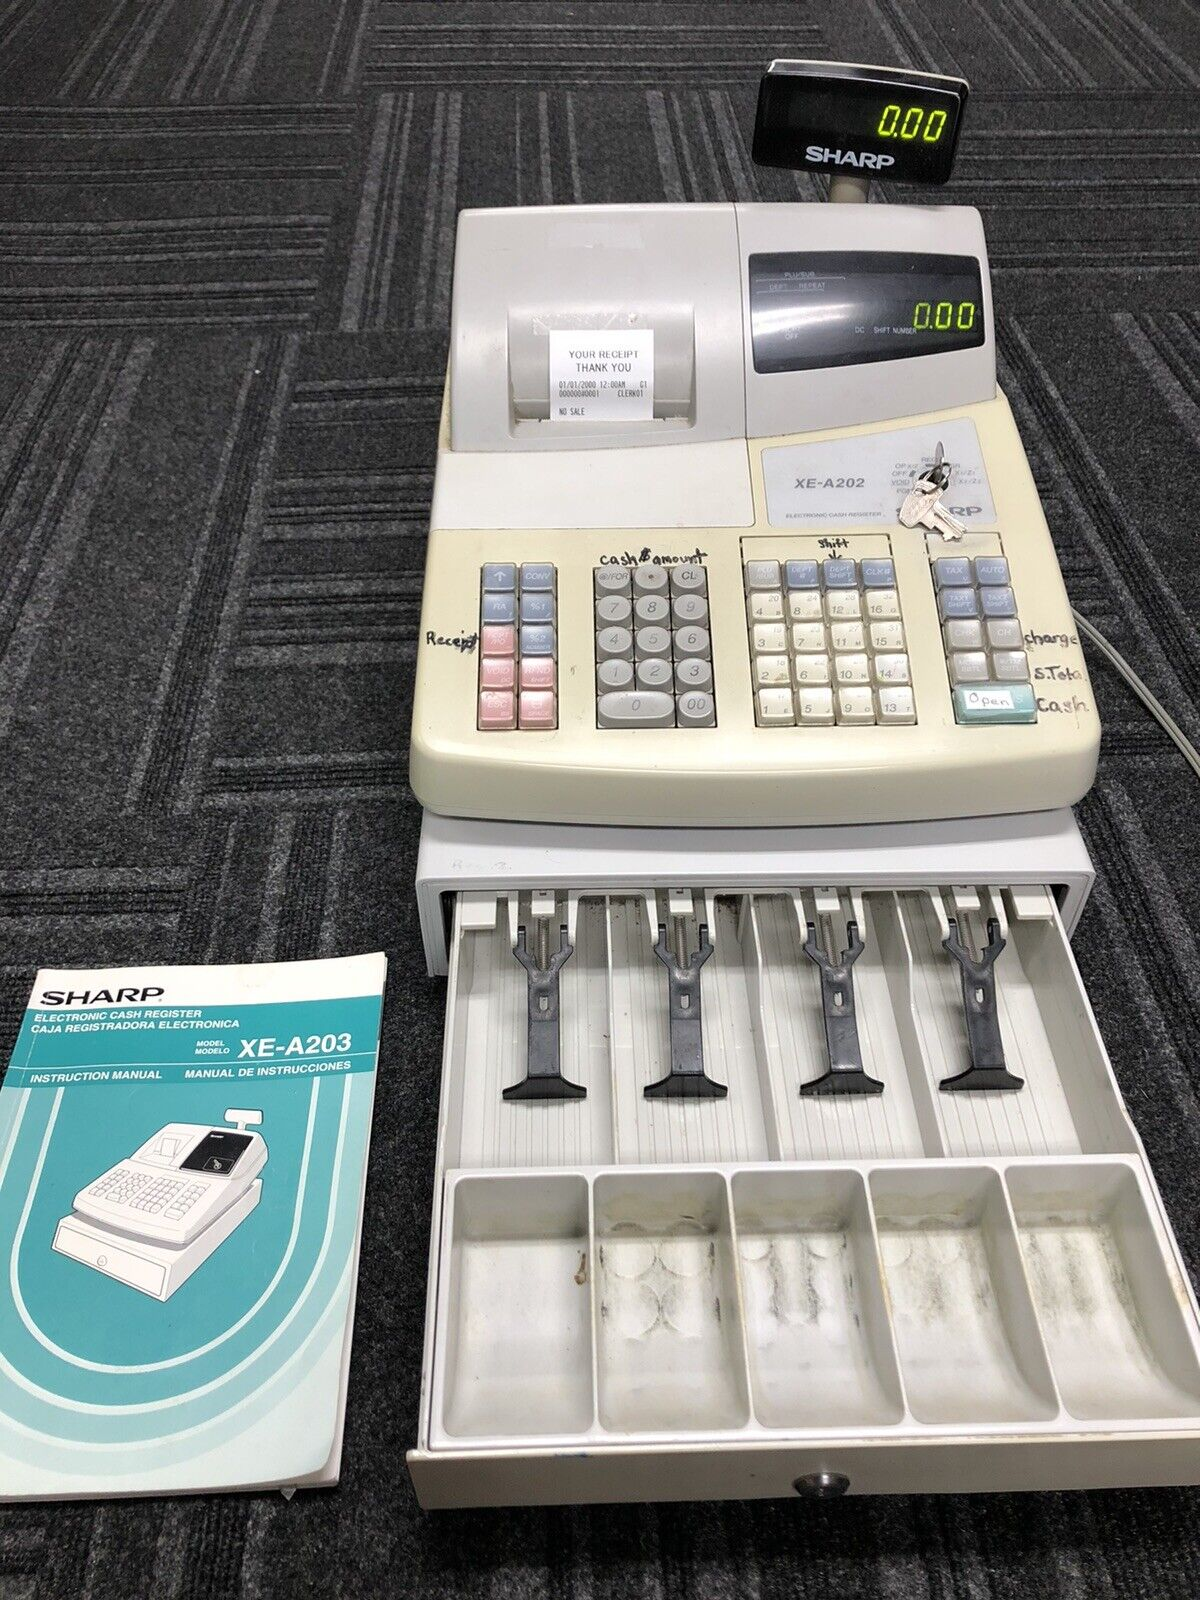 SHARP XE-A202 Cash Register With Keys and Instructions